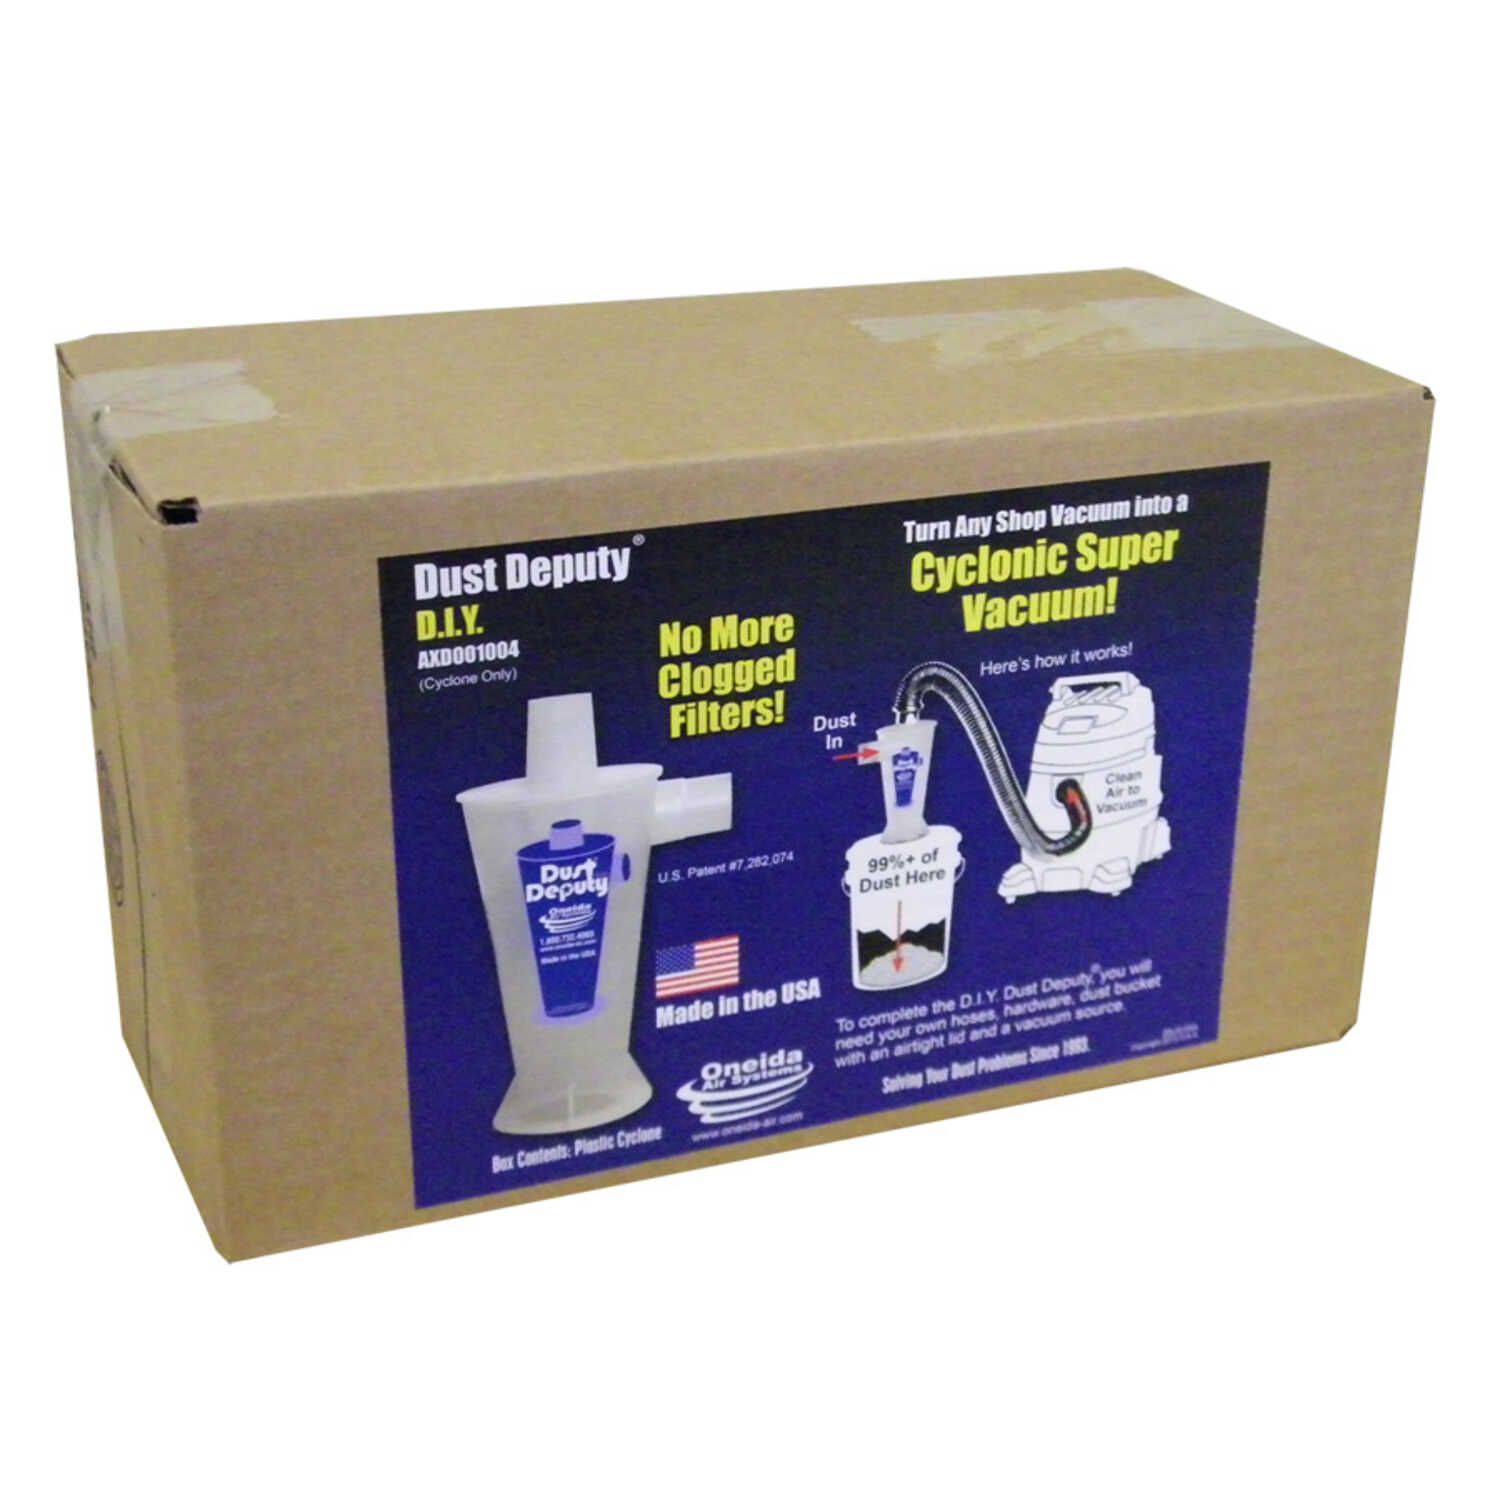 Oneida Air Systems  6.25  L x 7 in. W x 9 in. Dia. Wet/Dry Vac Cyclone Separator Kit  1 pc.